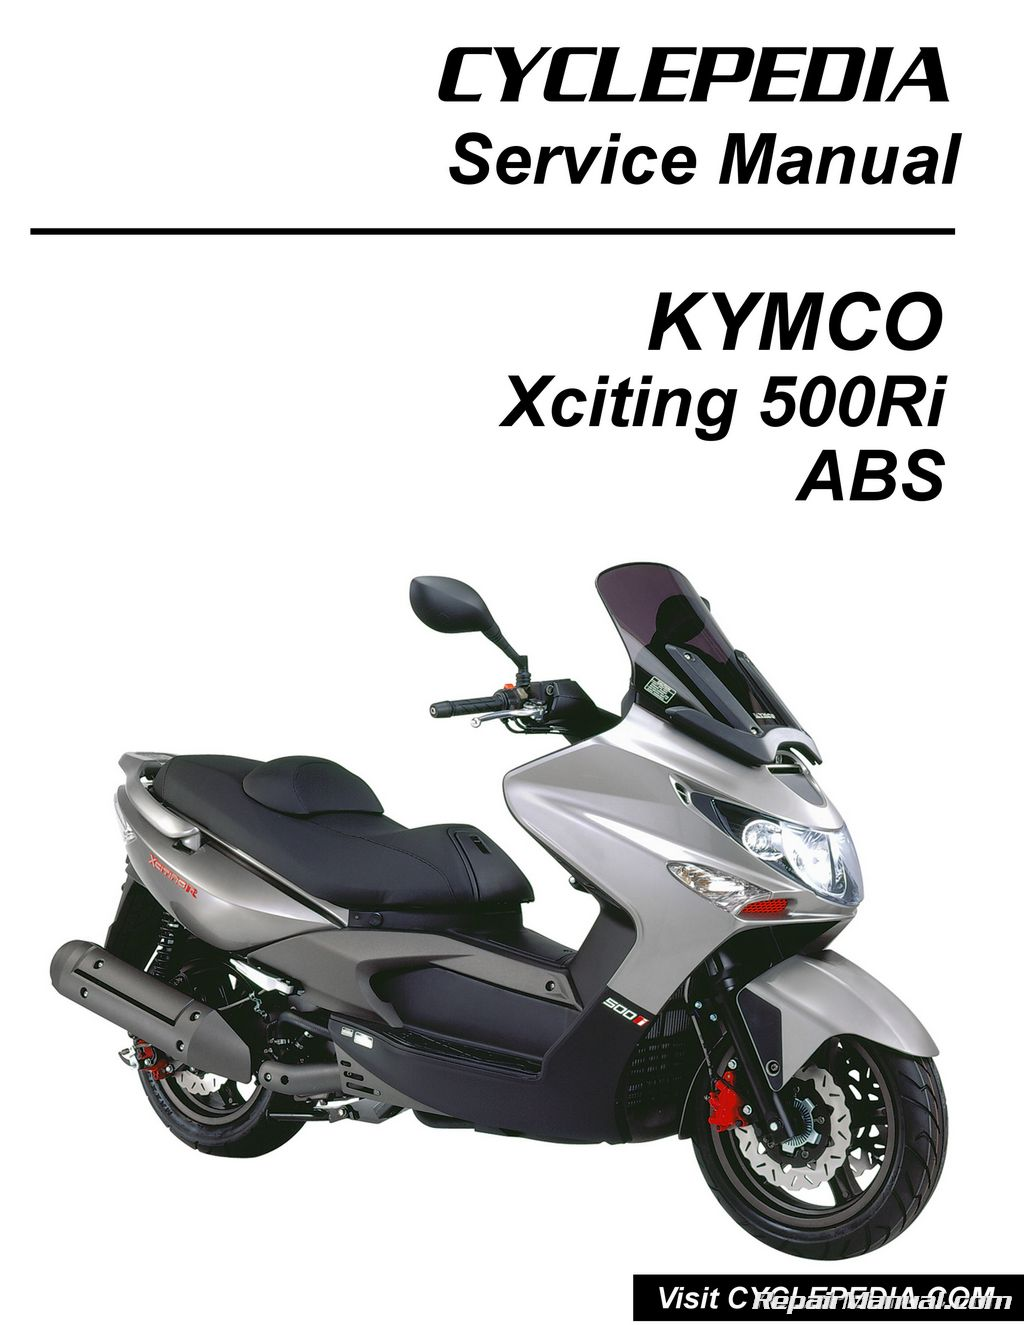 Kymco Wiring Diagram 2009 500 Trusted Agility 125 Xciting 500ri Abs Scooter Service Manual Printed By Cyclepedia Rh Repairmanual Com Light Jonway